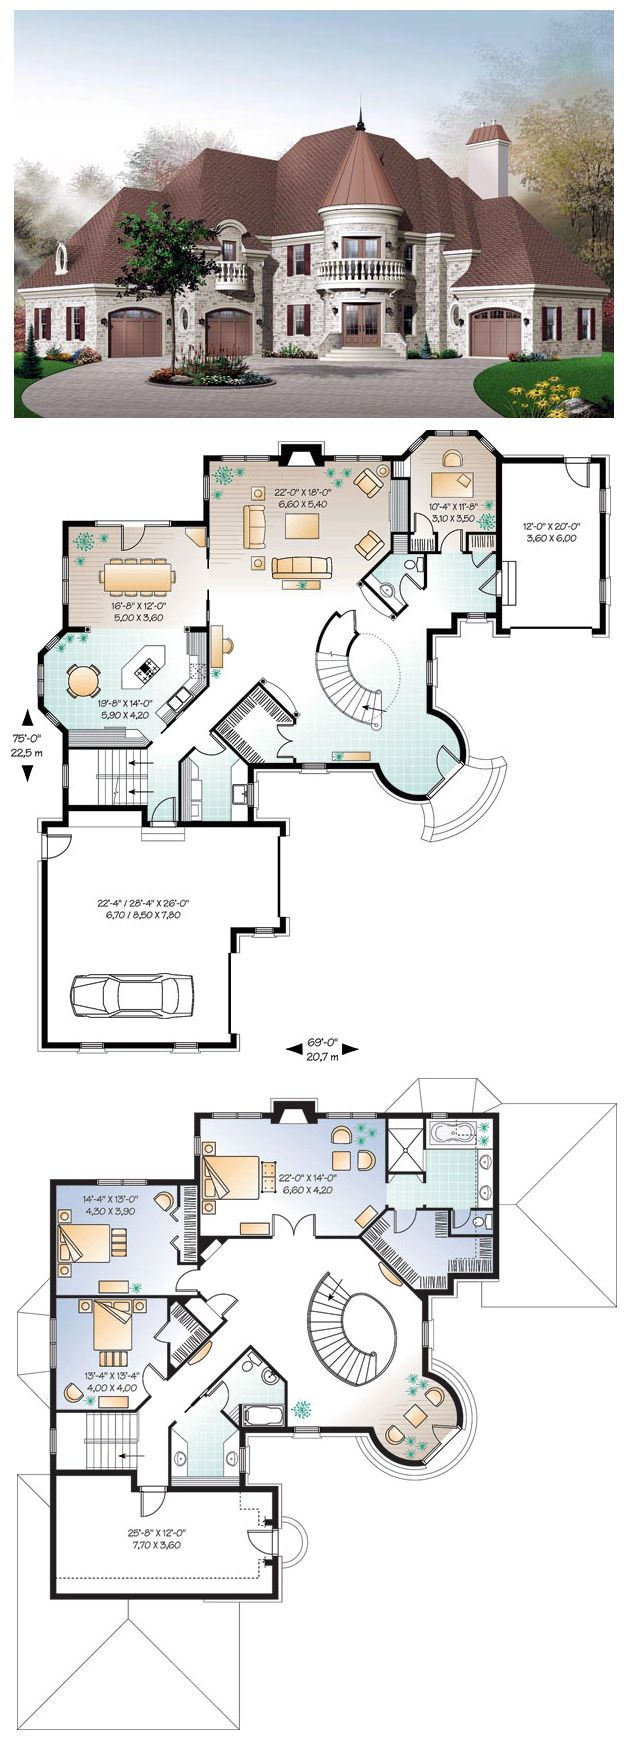 Victorian House Plan 65361 The Roof Garage Bedroom And